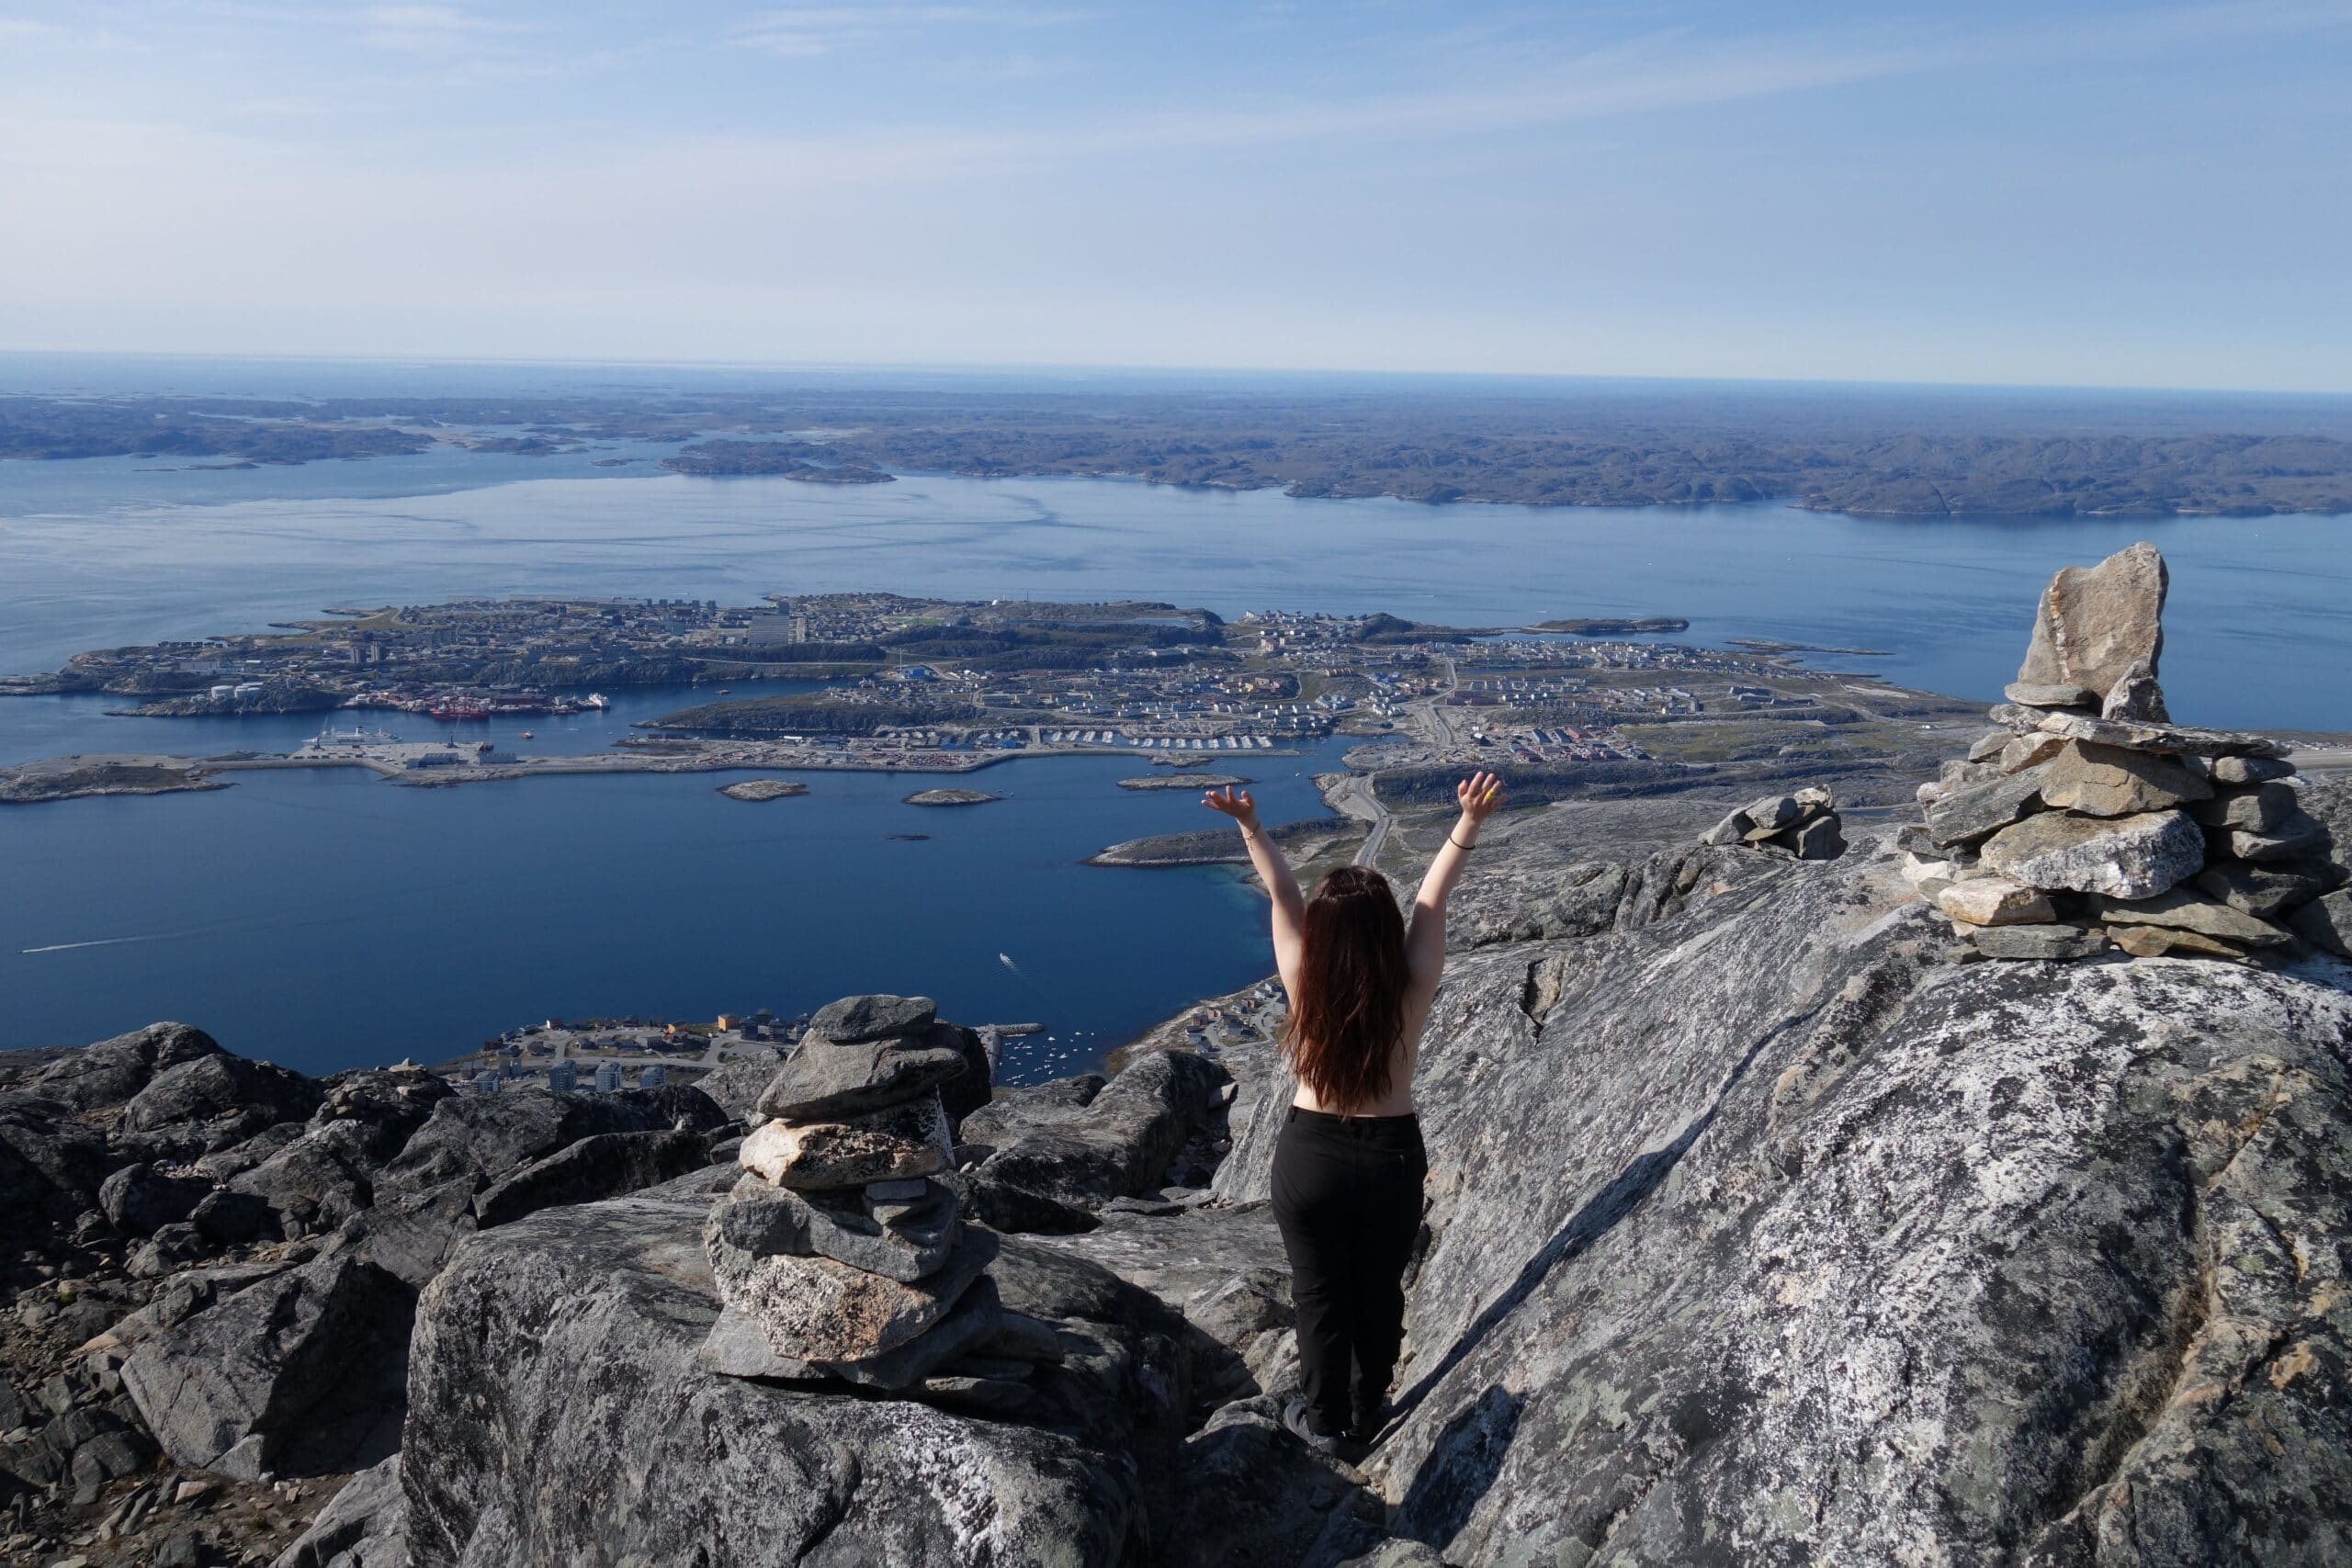 Climbing in Nuuk – To Ukkusissat (aka. Store Malene, 775m) – A mountain with amazing view in Nuuk